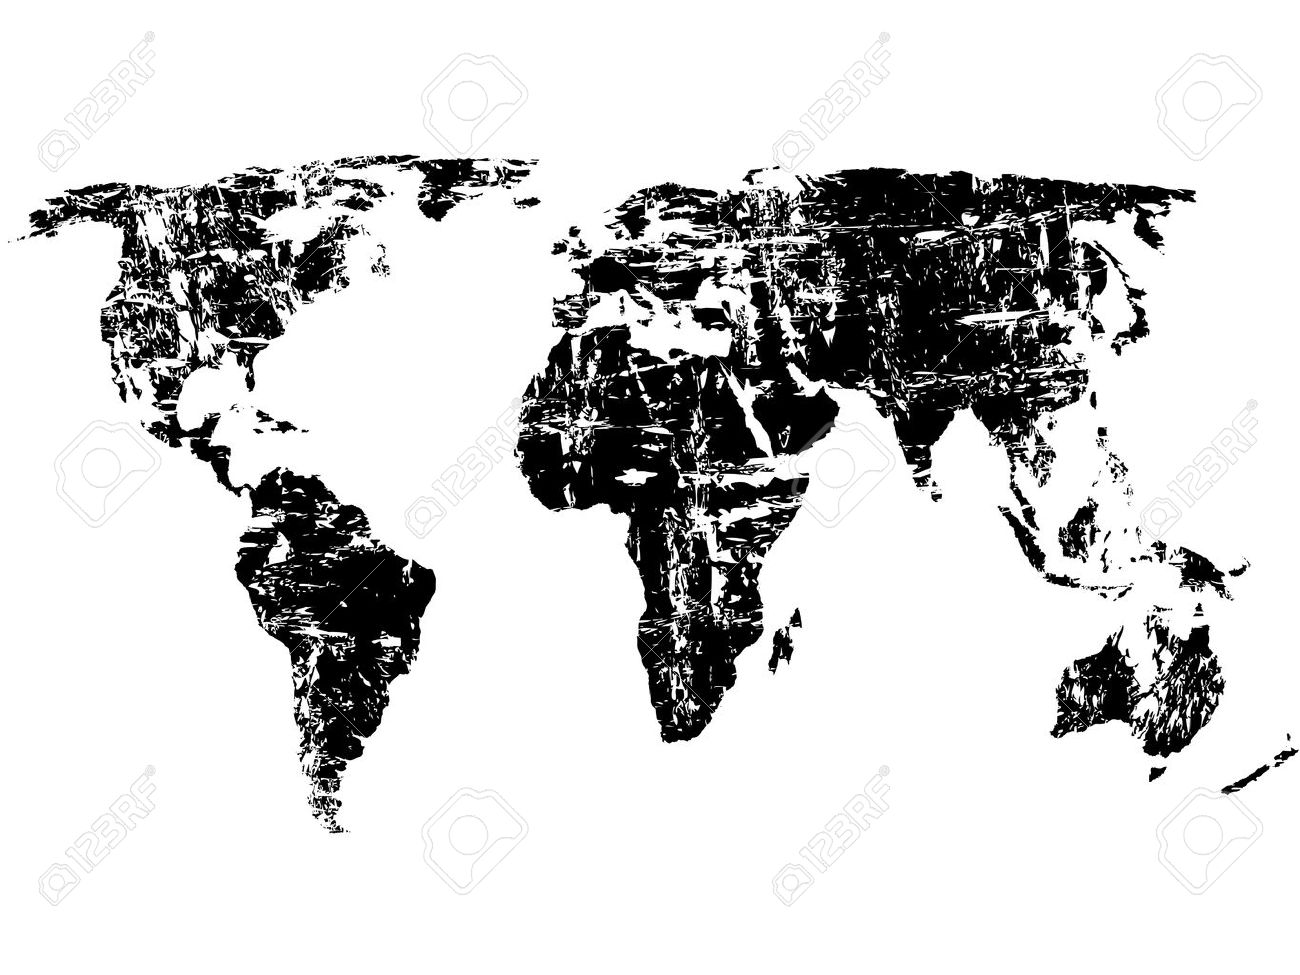 Black grunge world map on a white background vector illustration black grunge world map on a white background vector illustration stock vector 9410389 gumiabroncs Gallery